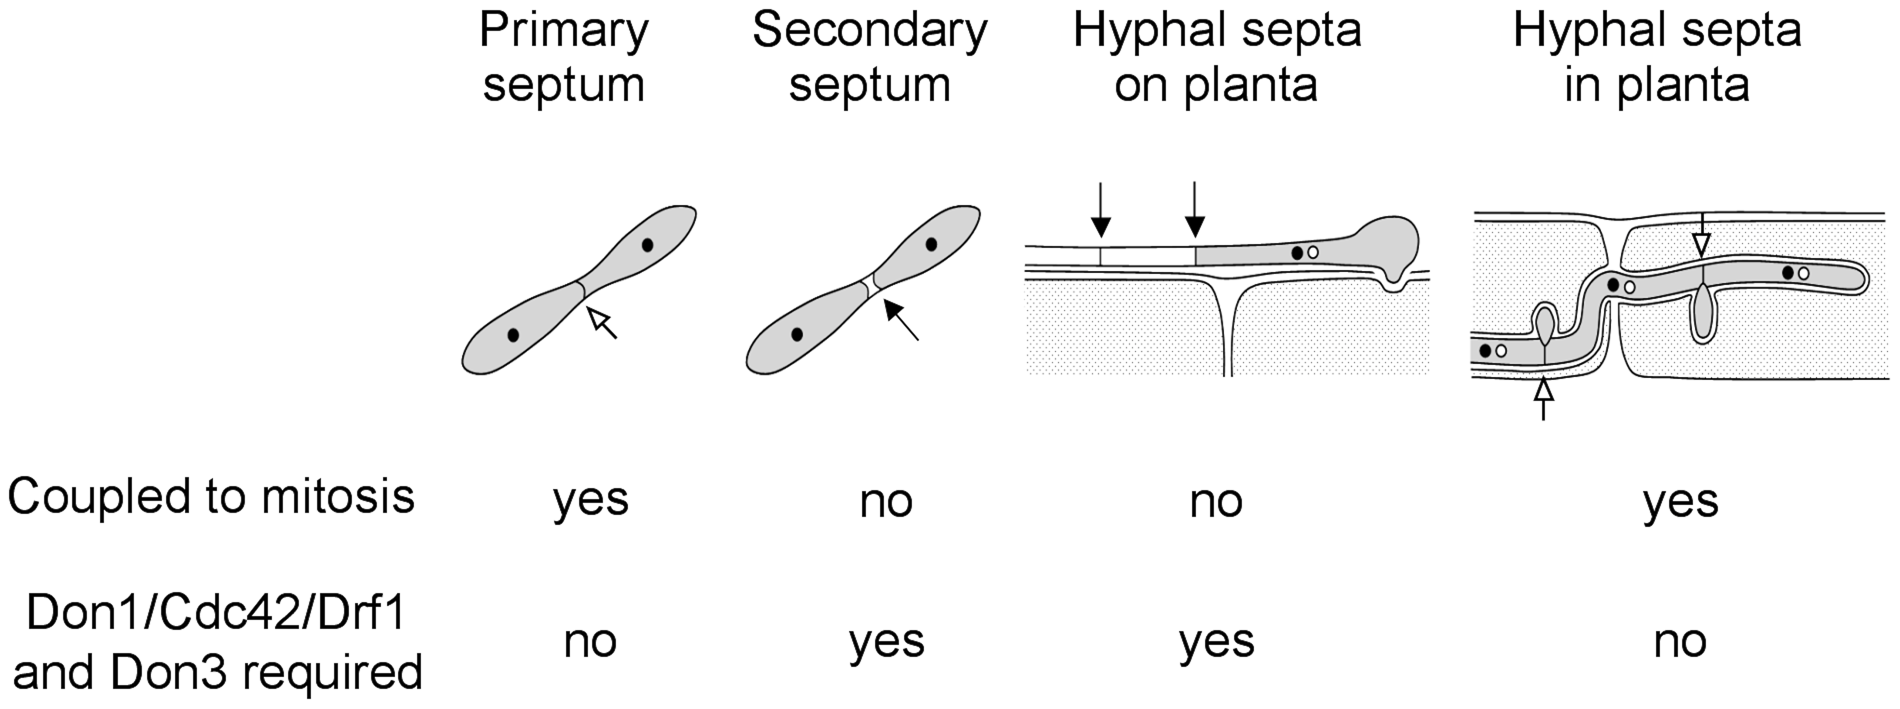 The Cdc42 signaling network regulates septation events that are uncoupled to mitosis.